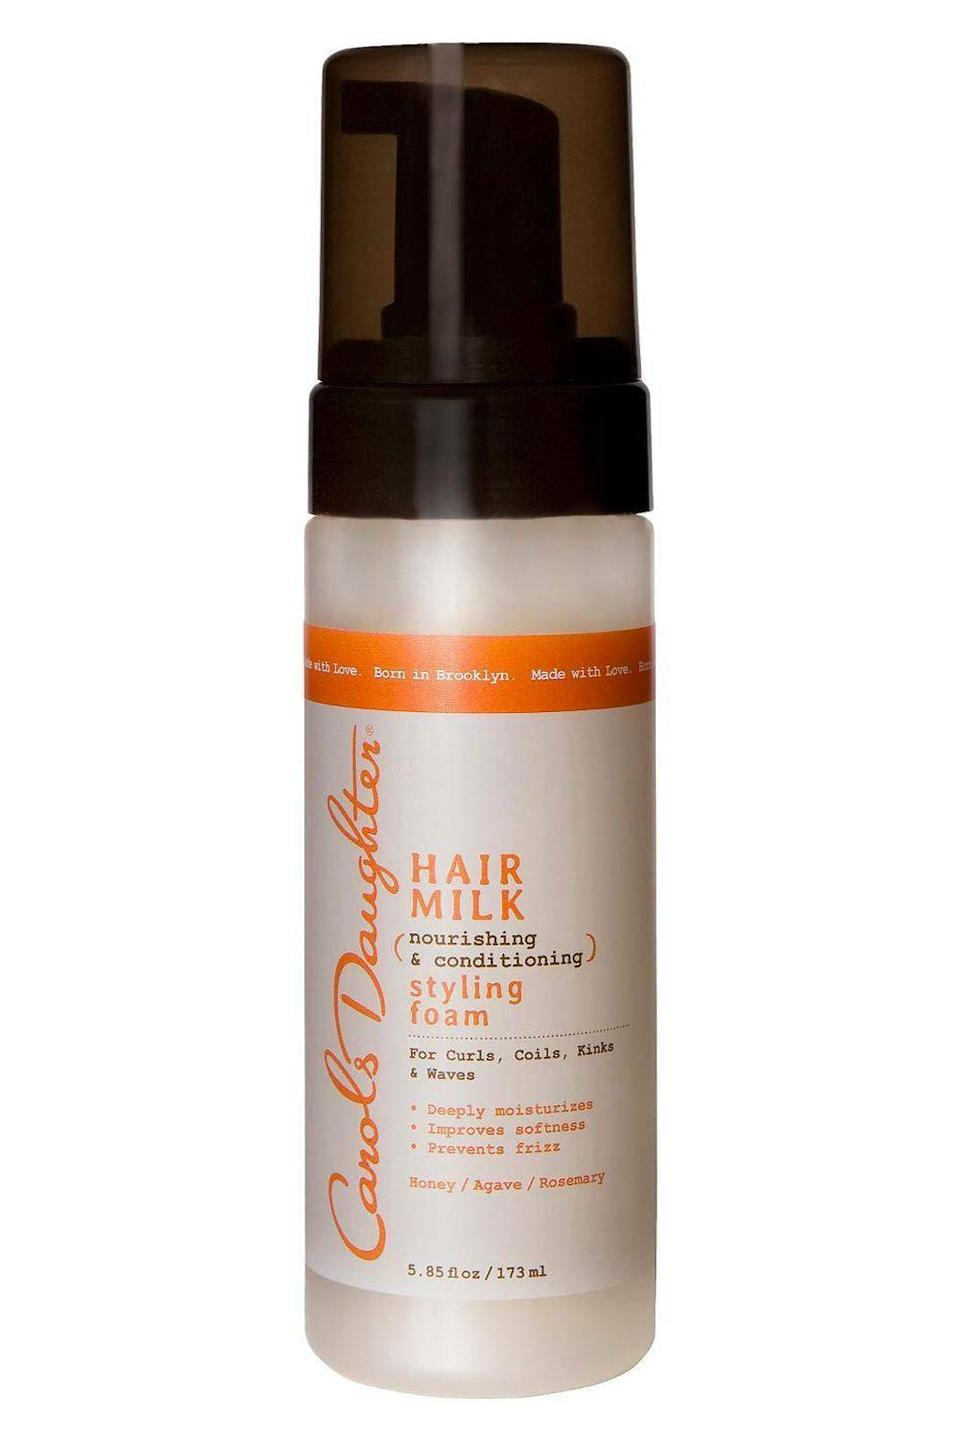 """<p><strong>Carol's Daughter</strong></p><p>target.com</p><p><strong>$13.49</strong></p><p><a href=""""https://www.target.com/p/carols-daughter-hair-milk-nourishing-and-conditioning-styling-foam-5-85-oz/-/A-15041866"""" rel=""""nofollow noopener"""" target=""""_blank"""" data-ylk=""""slk:Shop Now"""" class=""""link rapid-noclick-resp"""">Shop Now</a></p><p>If you have tighter curls, you know how it can be hard to find a mousse that won't make your hair stiff as hell. Enter: this <a href=""""https://www.cosmopolitan.com/style-beauty/beauty/g27345497/best-leave-in-conditioners-curly-hair/"""" rel=""""nofollow noopener"""" target=""""_blank"""" data-ylk=""""slk:conditioning"""" class=""""link rapid-noclick-resp"""">conditioning</a> foam. The formula <strong>contains honey extract, which gives it a flexible, non-sticky hold.</strong> Rub 2-3 pumps of mousse between your palms, then finger-comb it through your hair for defined curls that won't flake. </p>"""